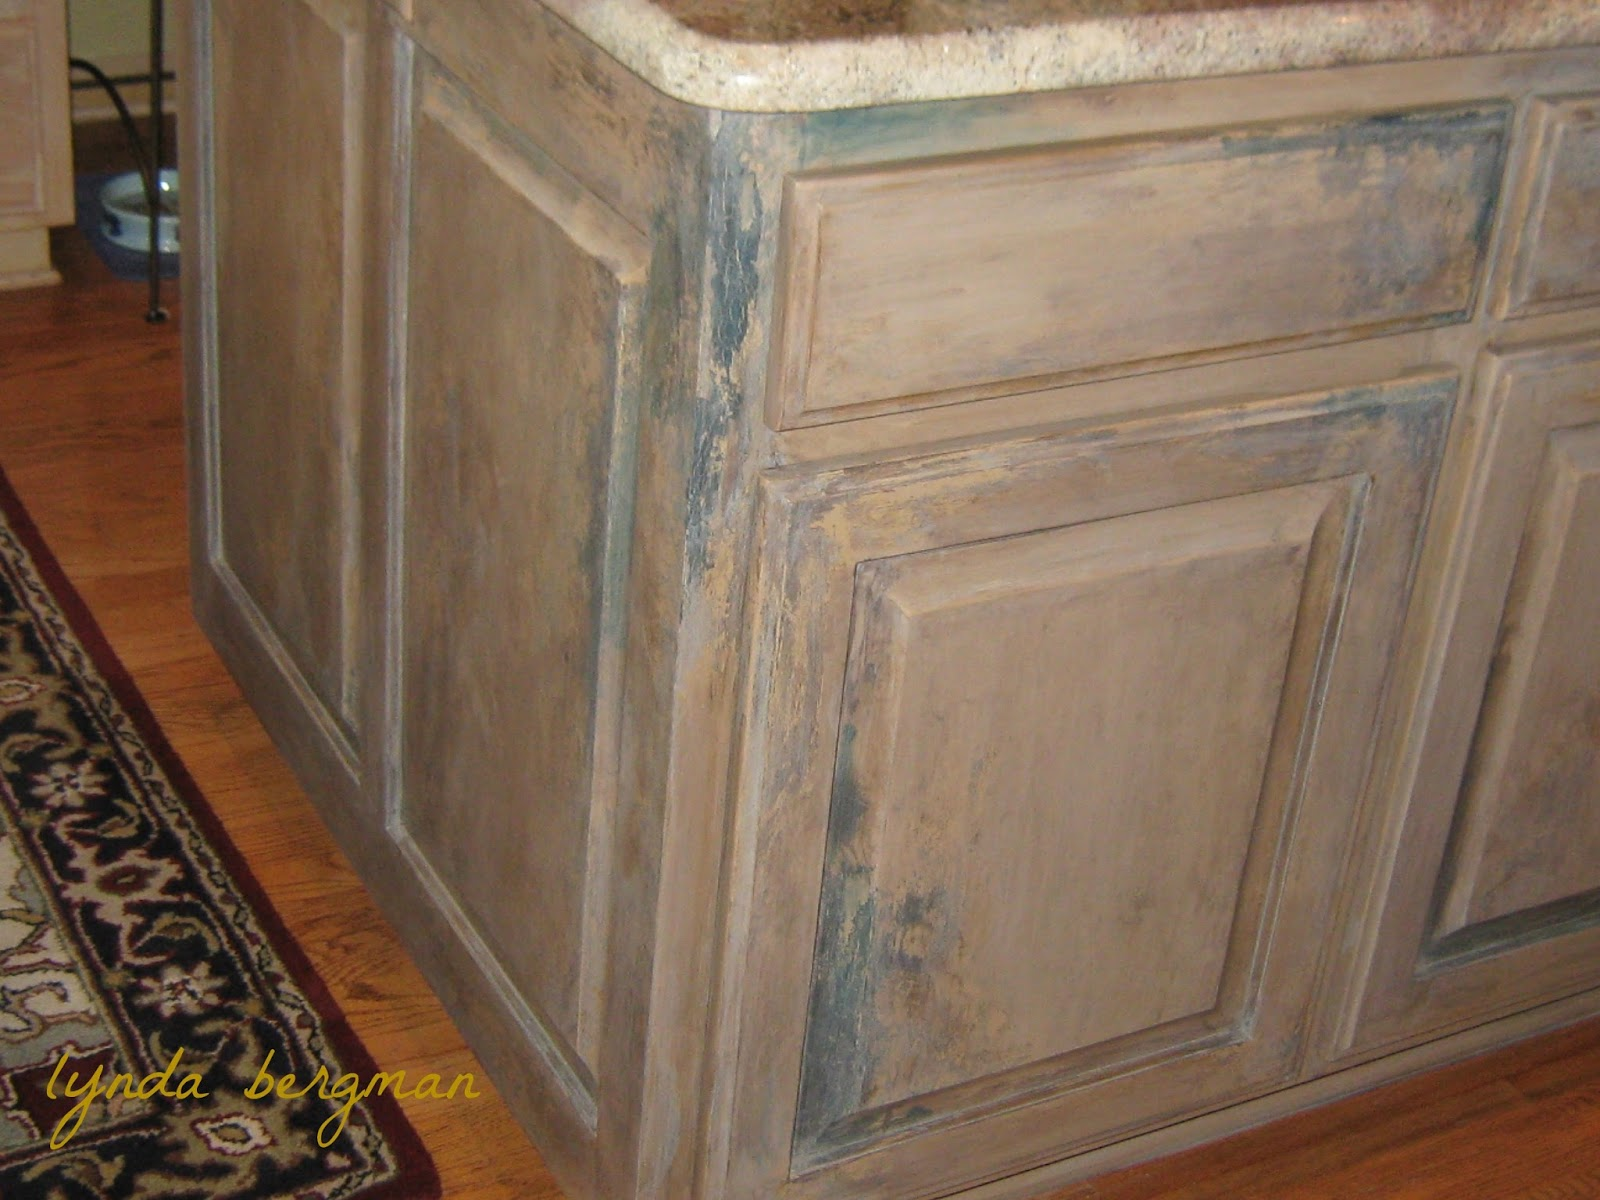 Lynda bergman decorative artisan painting a distressed Special paint finishes